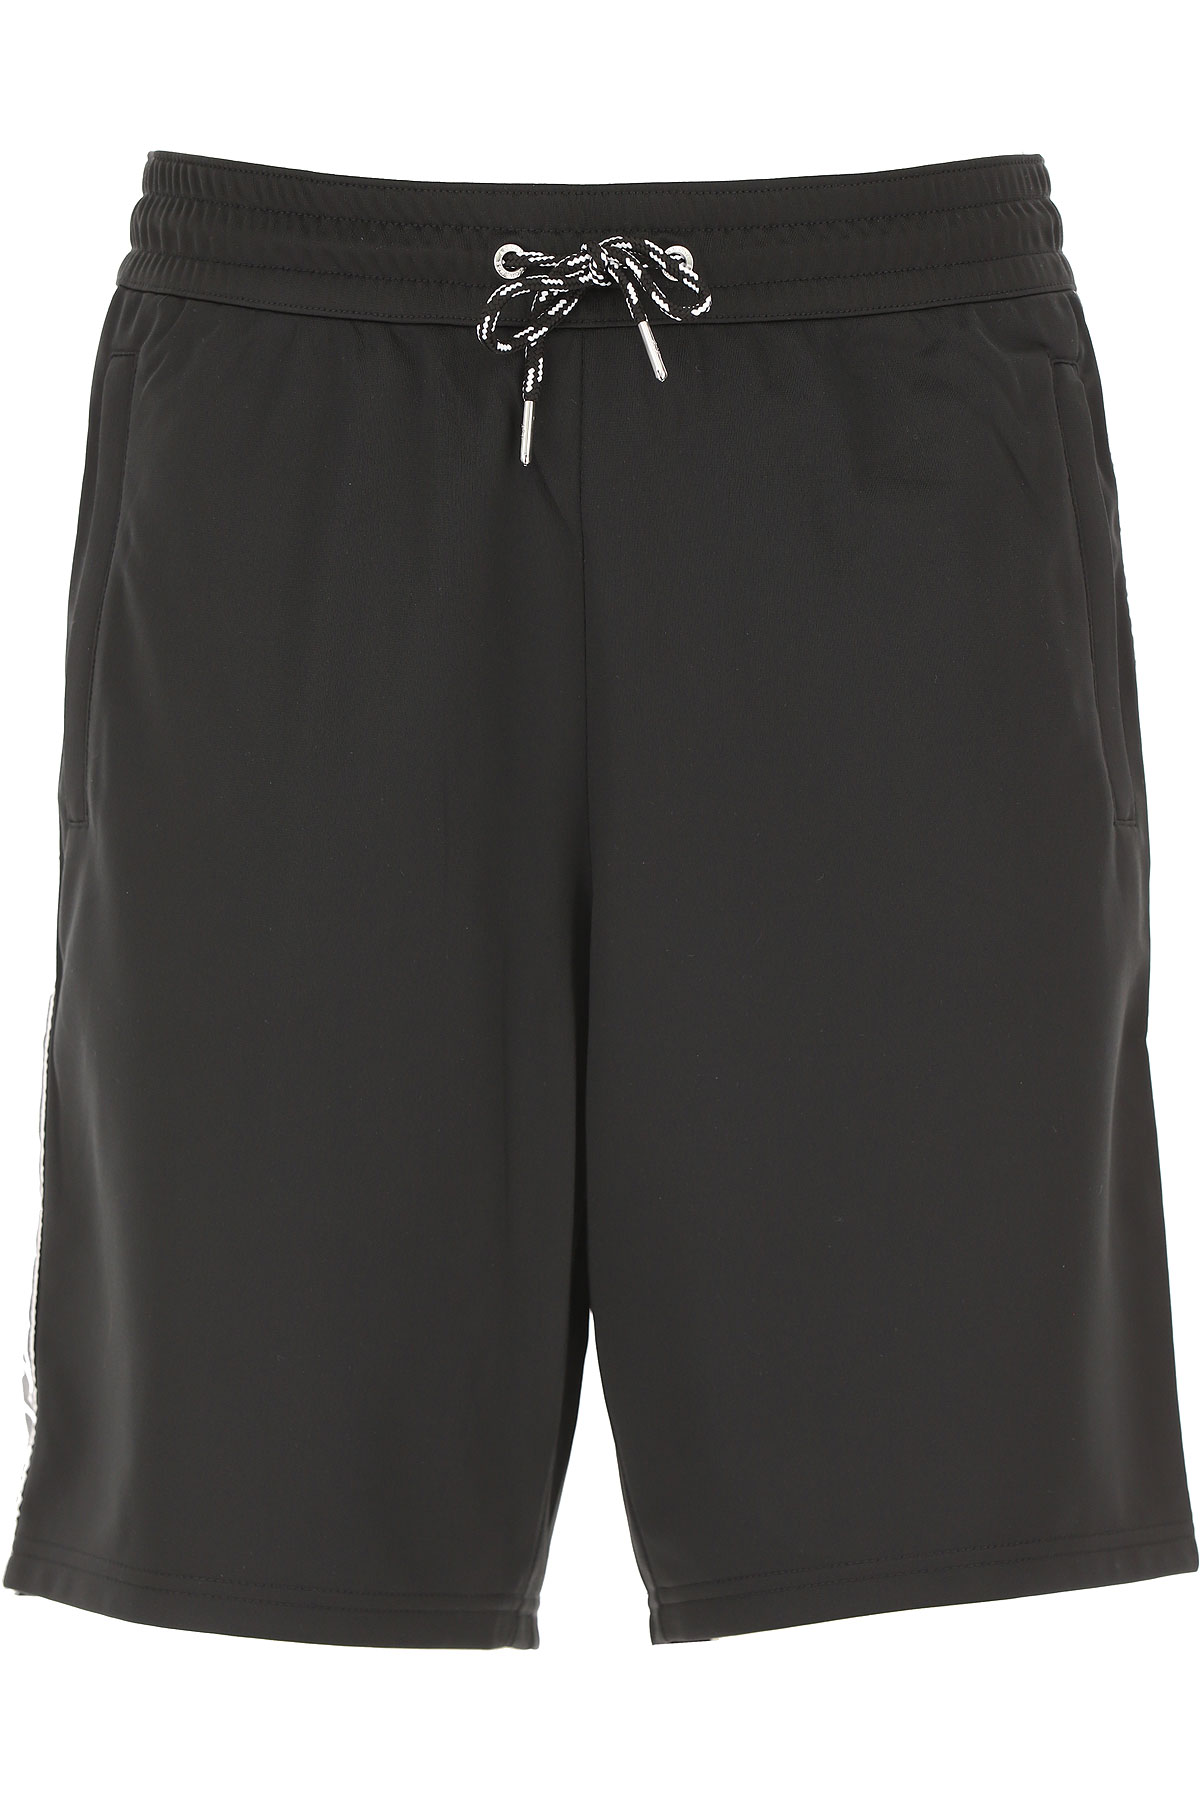 Armani Exchange Shorts for Men On Sale, Black, polyester, 2019, S (EU 46) L (EU 50)